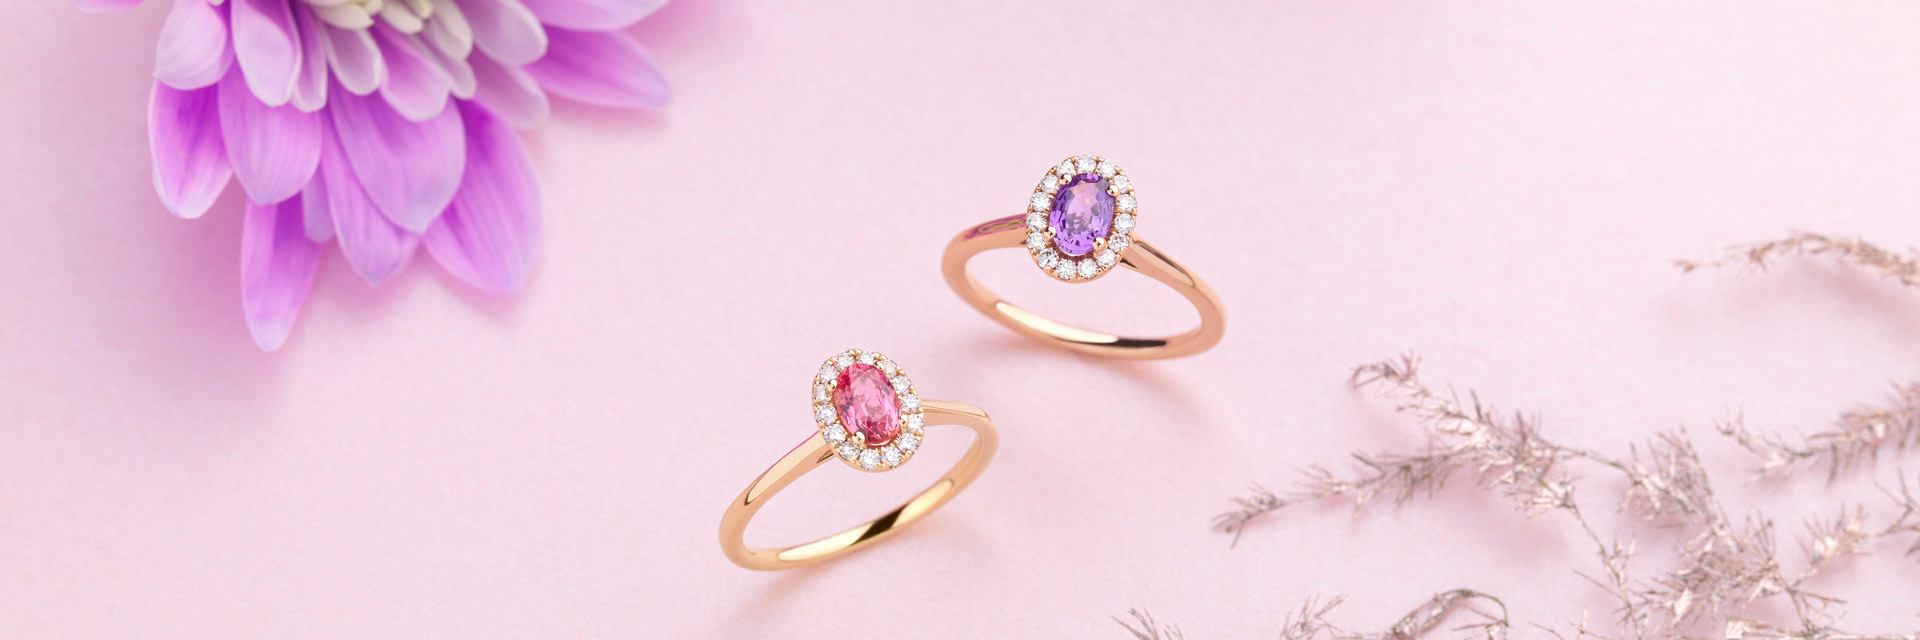 COLOURFUL GEMSTONES TO ADD A SWEET AND PRECIOUS TOUCH.